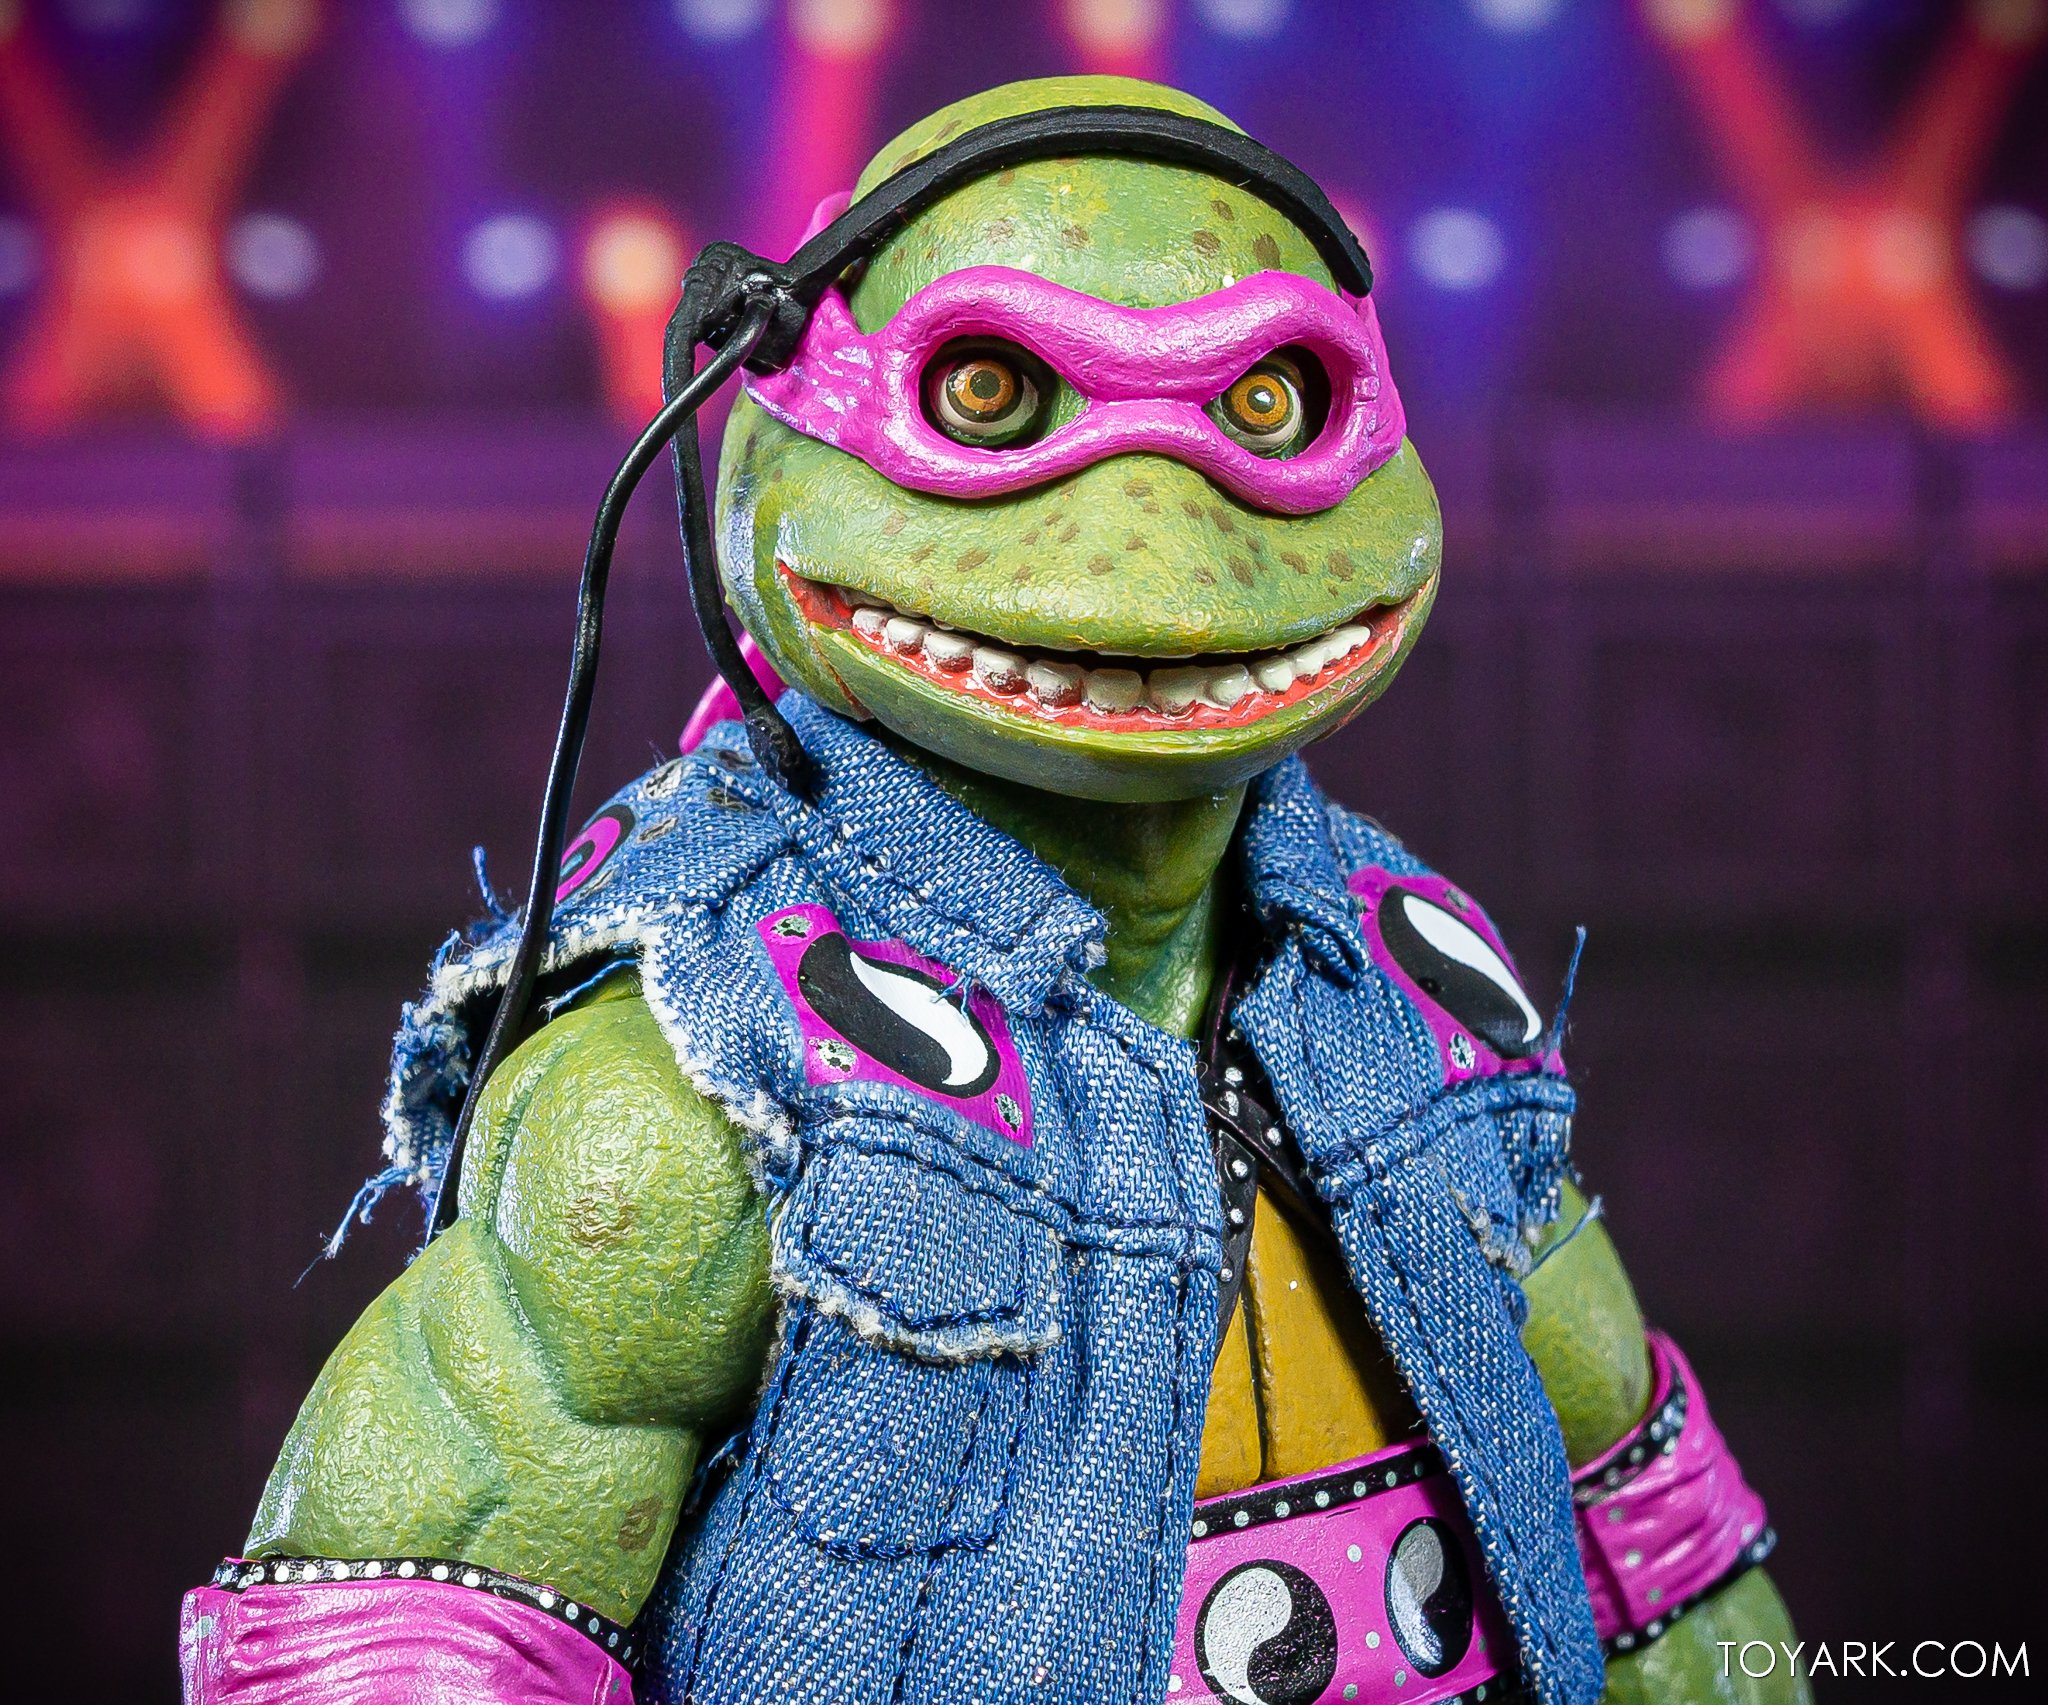 https://news.toyark.com/wp-content/uploads/sites/4/2020/07/SDCC-2020-TMNT-Musical-Mutagen-Tour-034.jpg